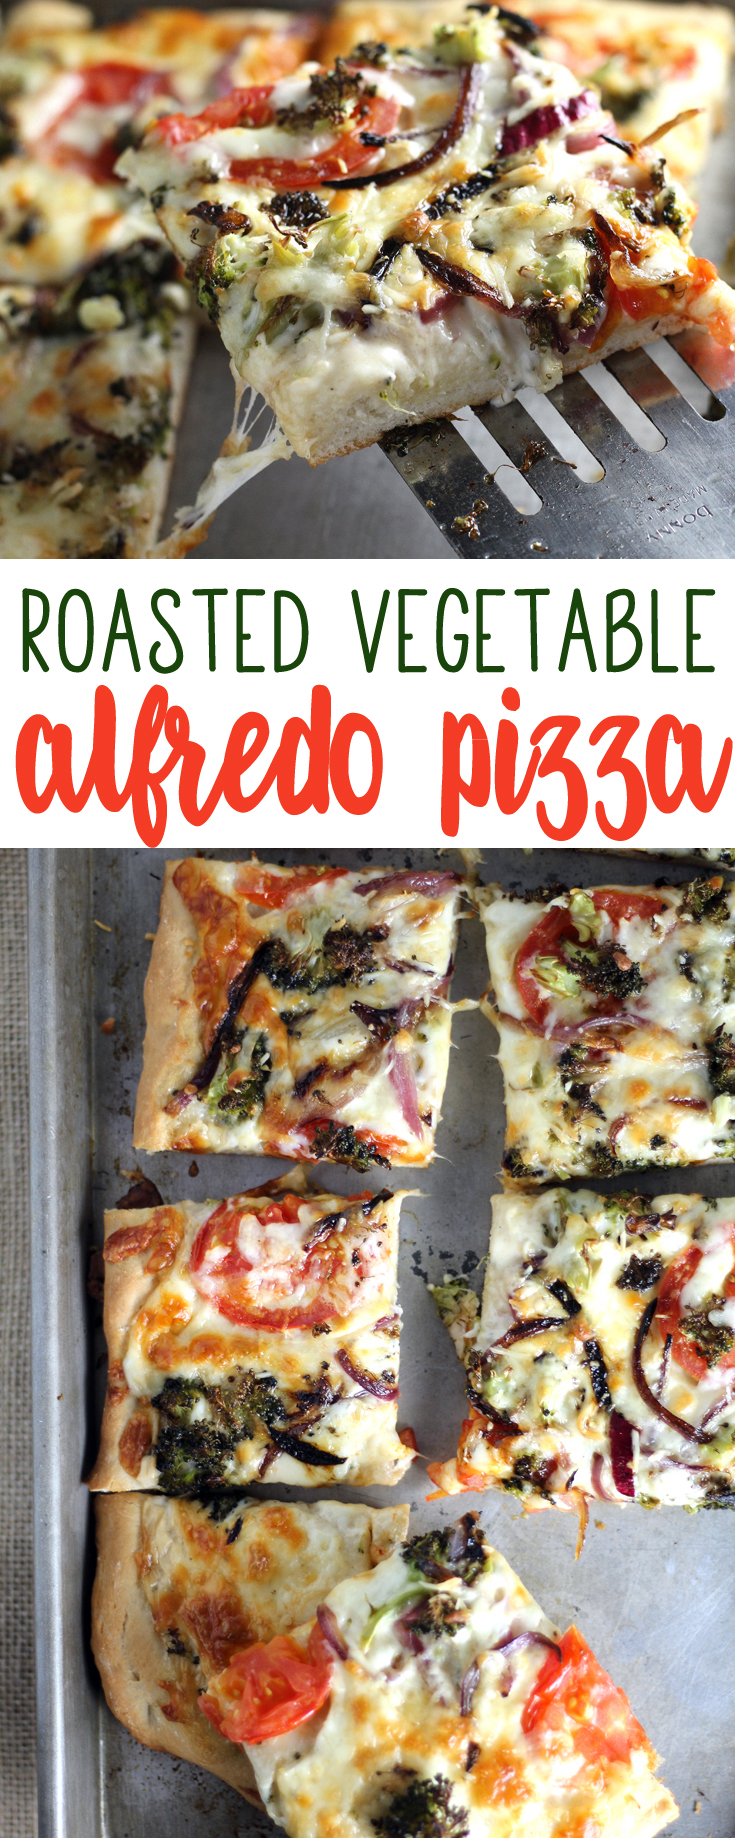 Caramelized onions, broccoli, creamy Alfredo sauce and loads of mozzarella on a homemade crust...this  Roasted Vegetable Alfredo Pizza makes my heart melt.   #vegetablepizza #Alfredo